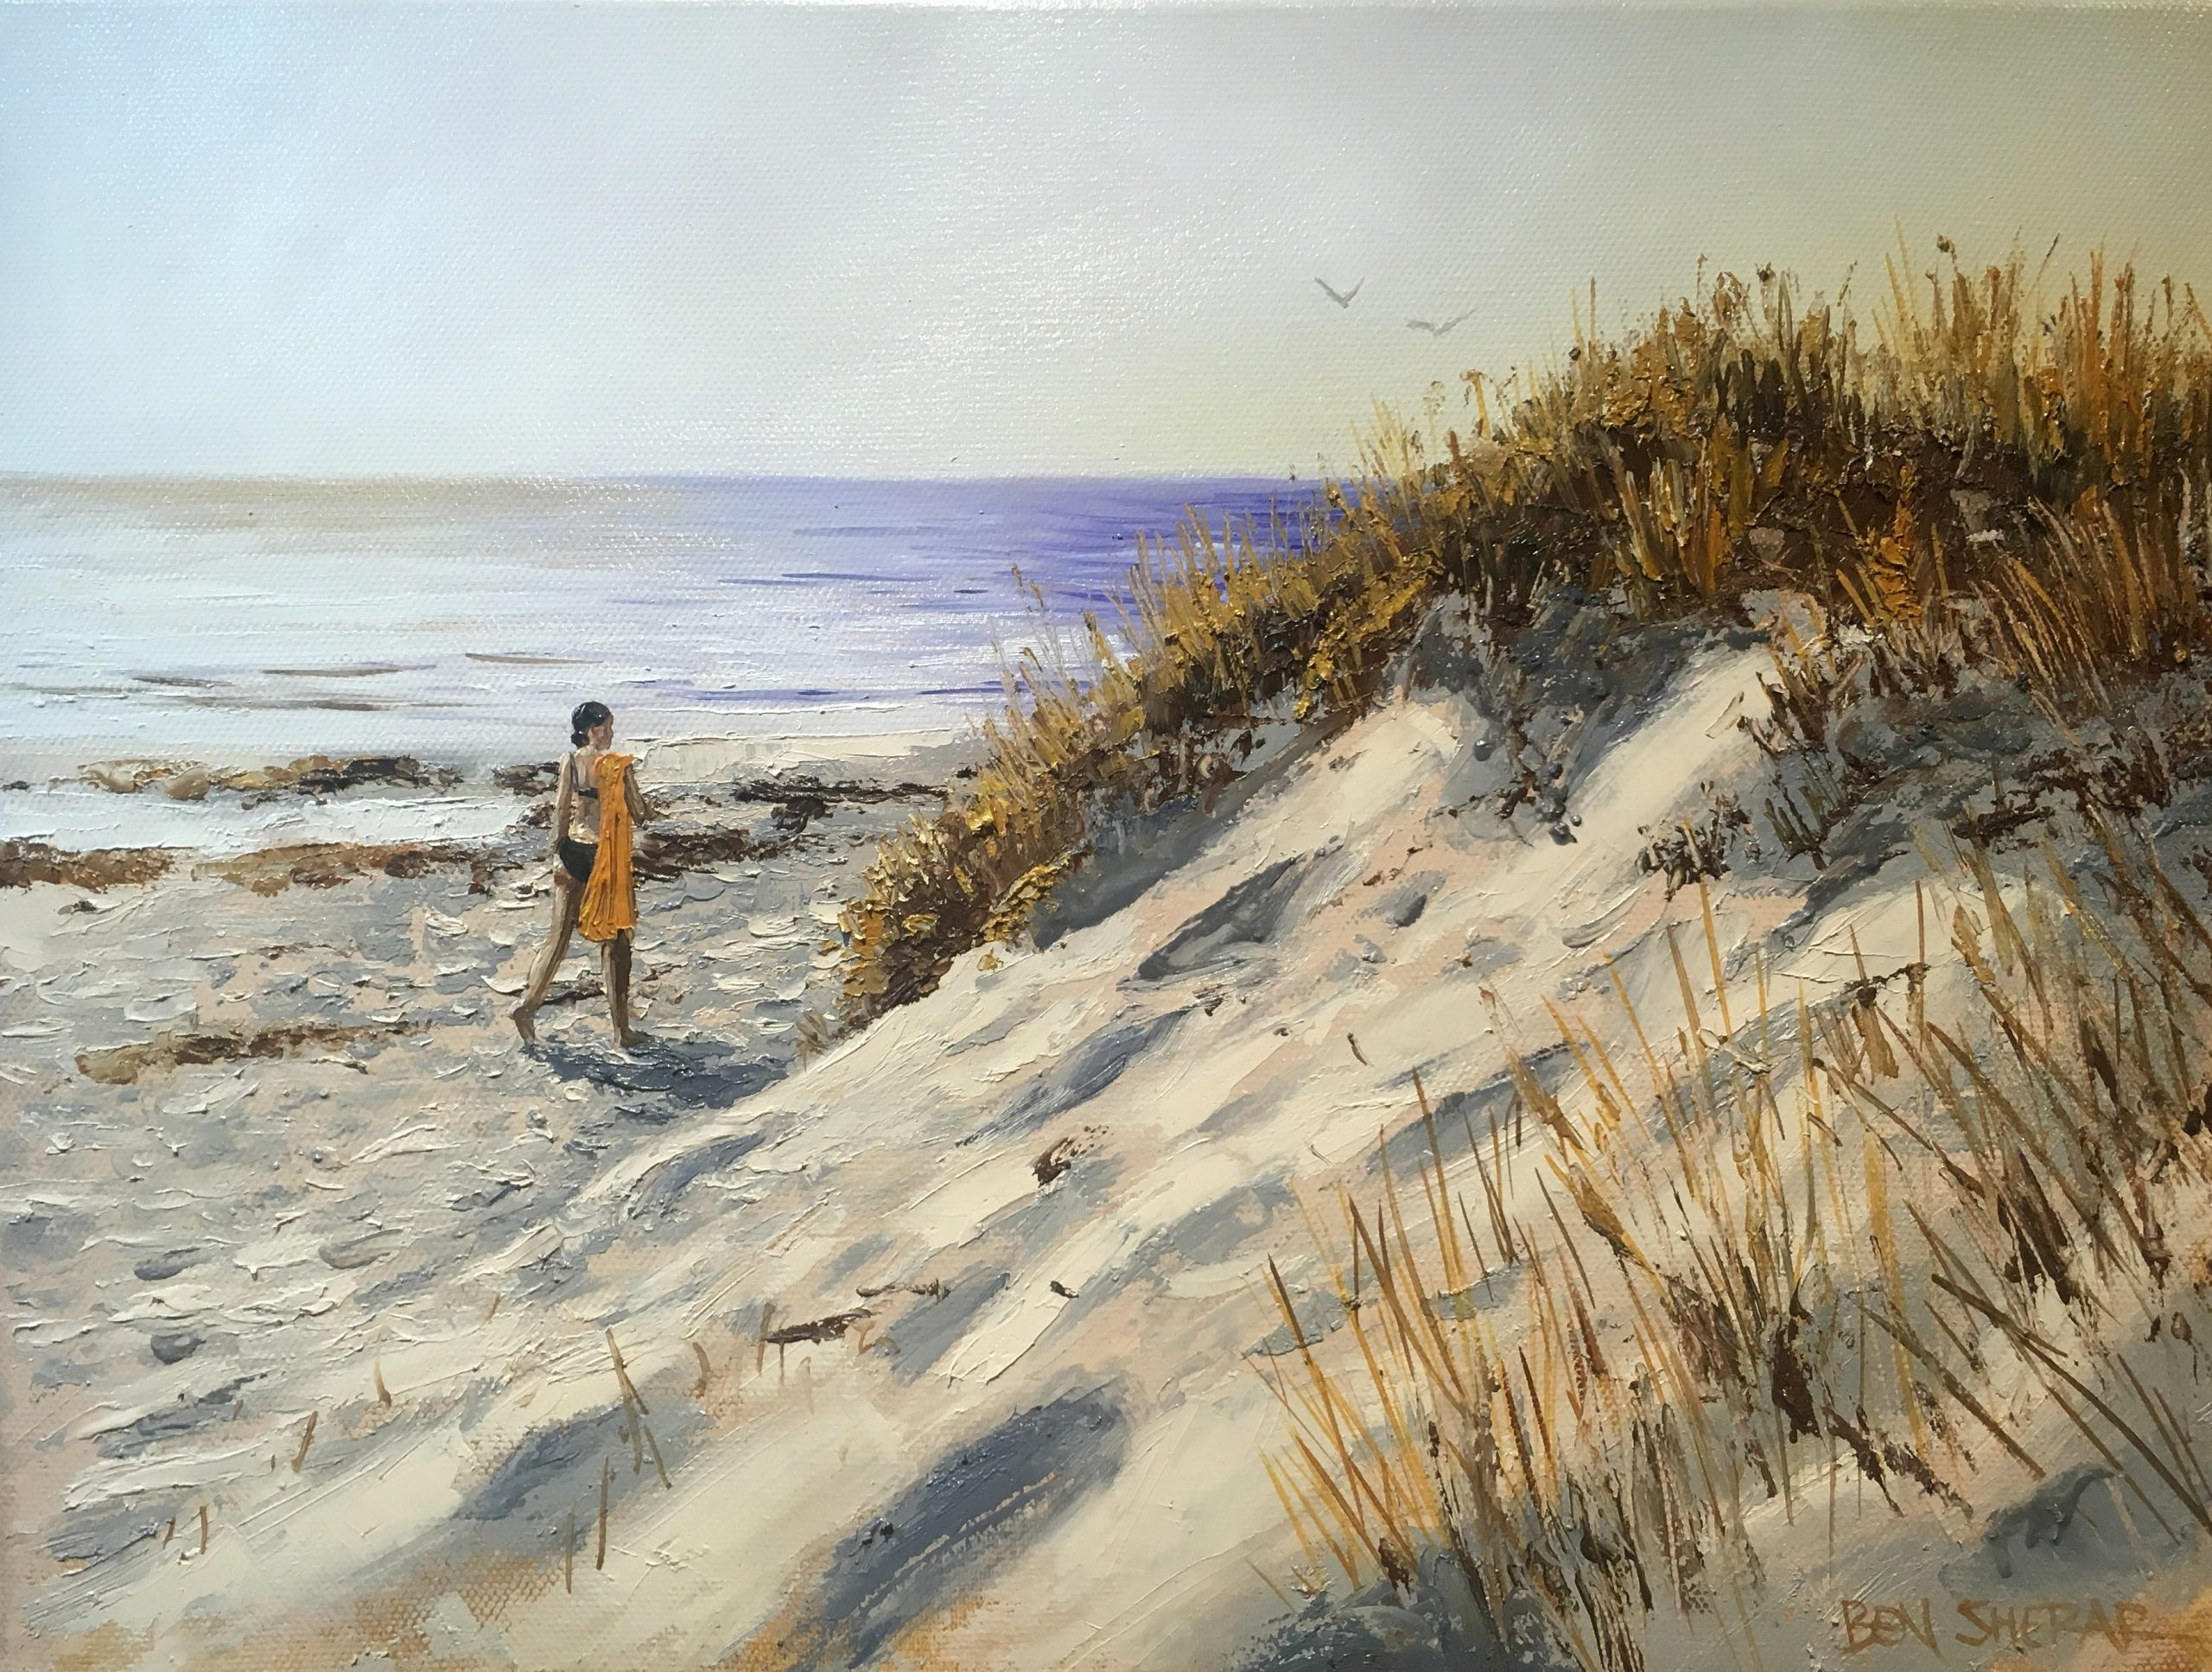 An original oil painting by Ben Sherar of a woman walking along a beach at sunset